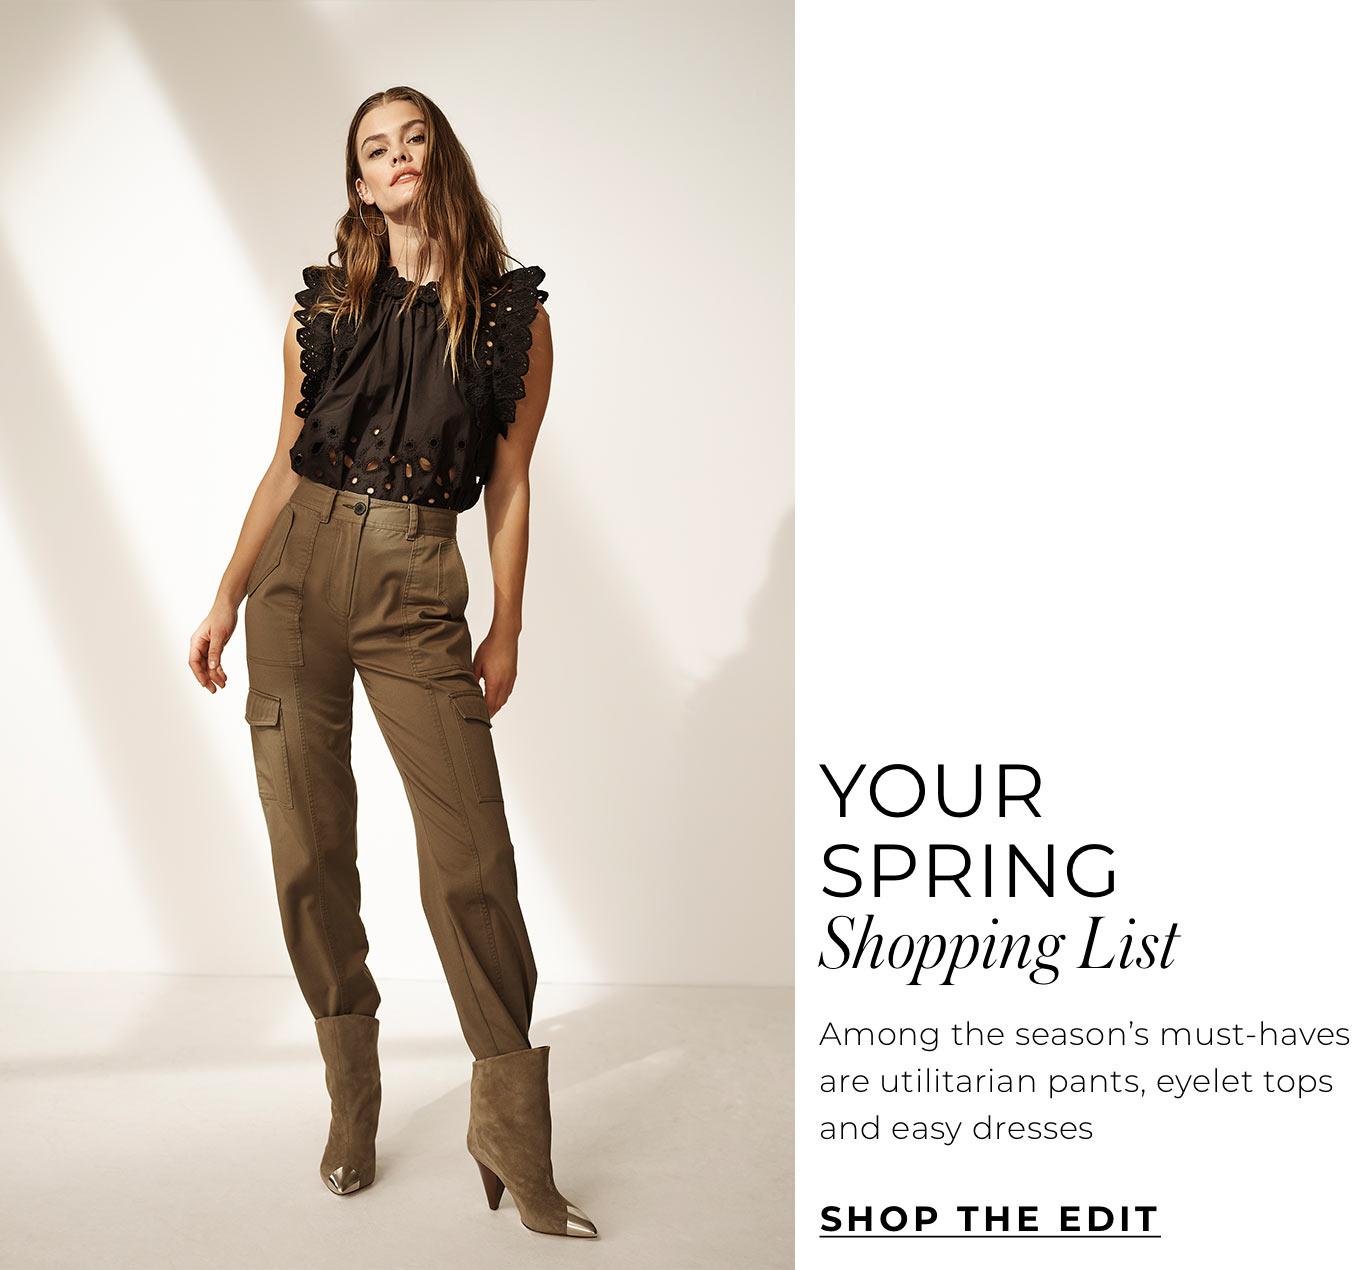 """Your Spring Shopping List Among the season's must-haves are utilitarian pants, eyelet tops and easy dresses"""